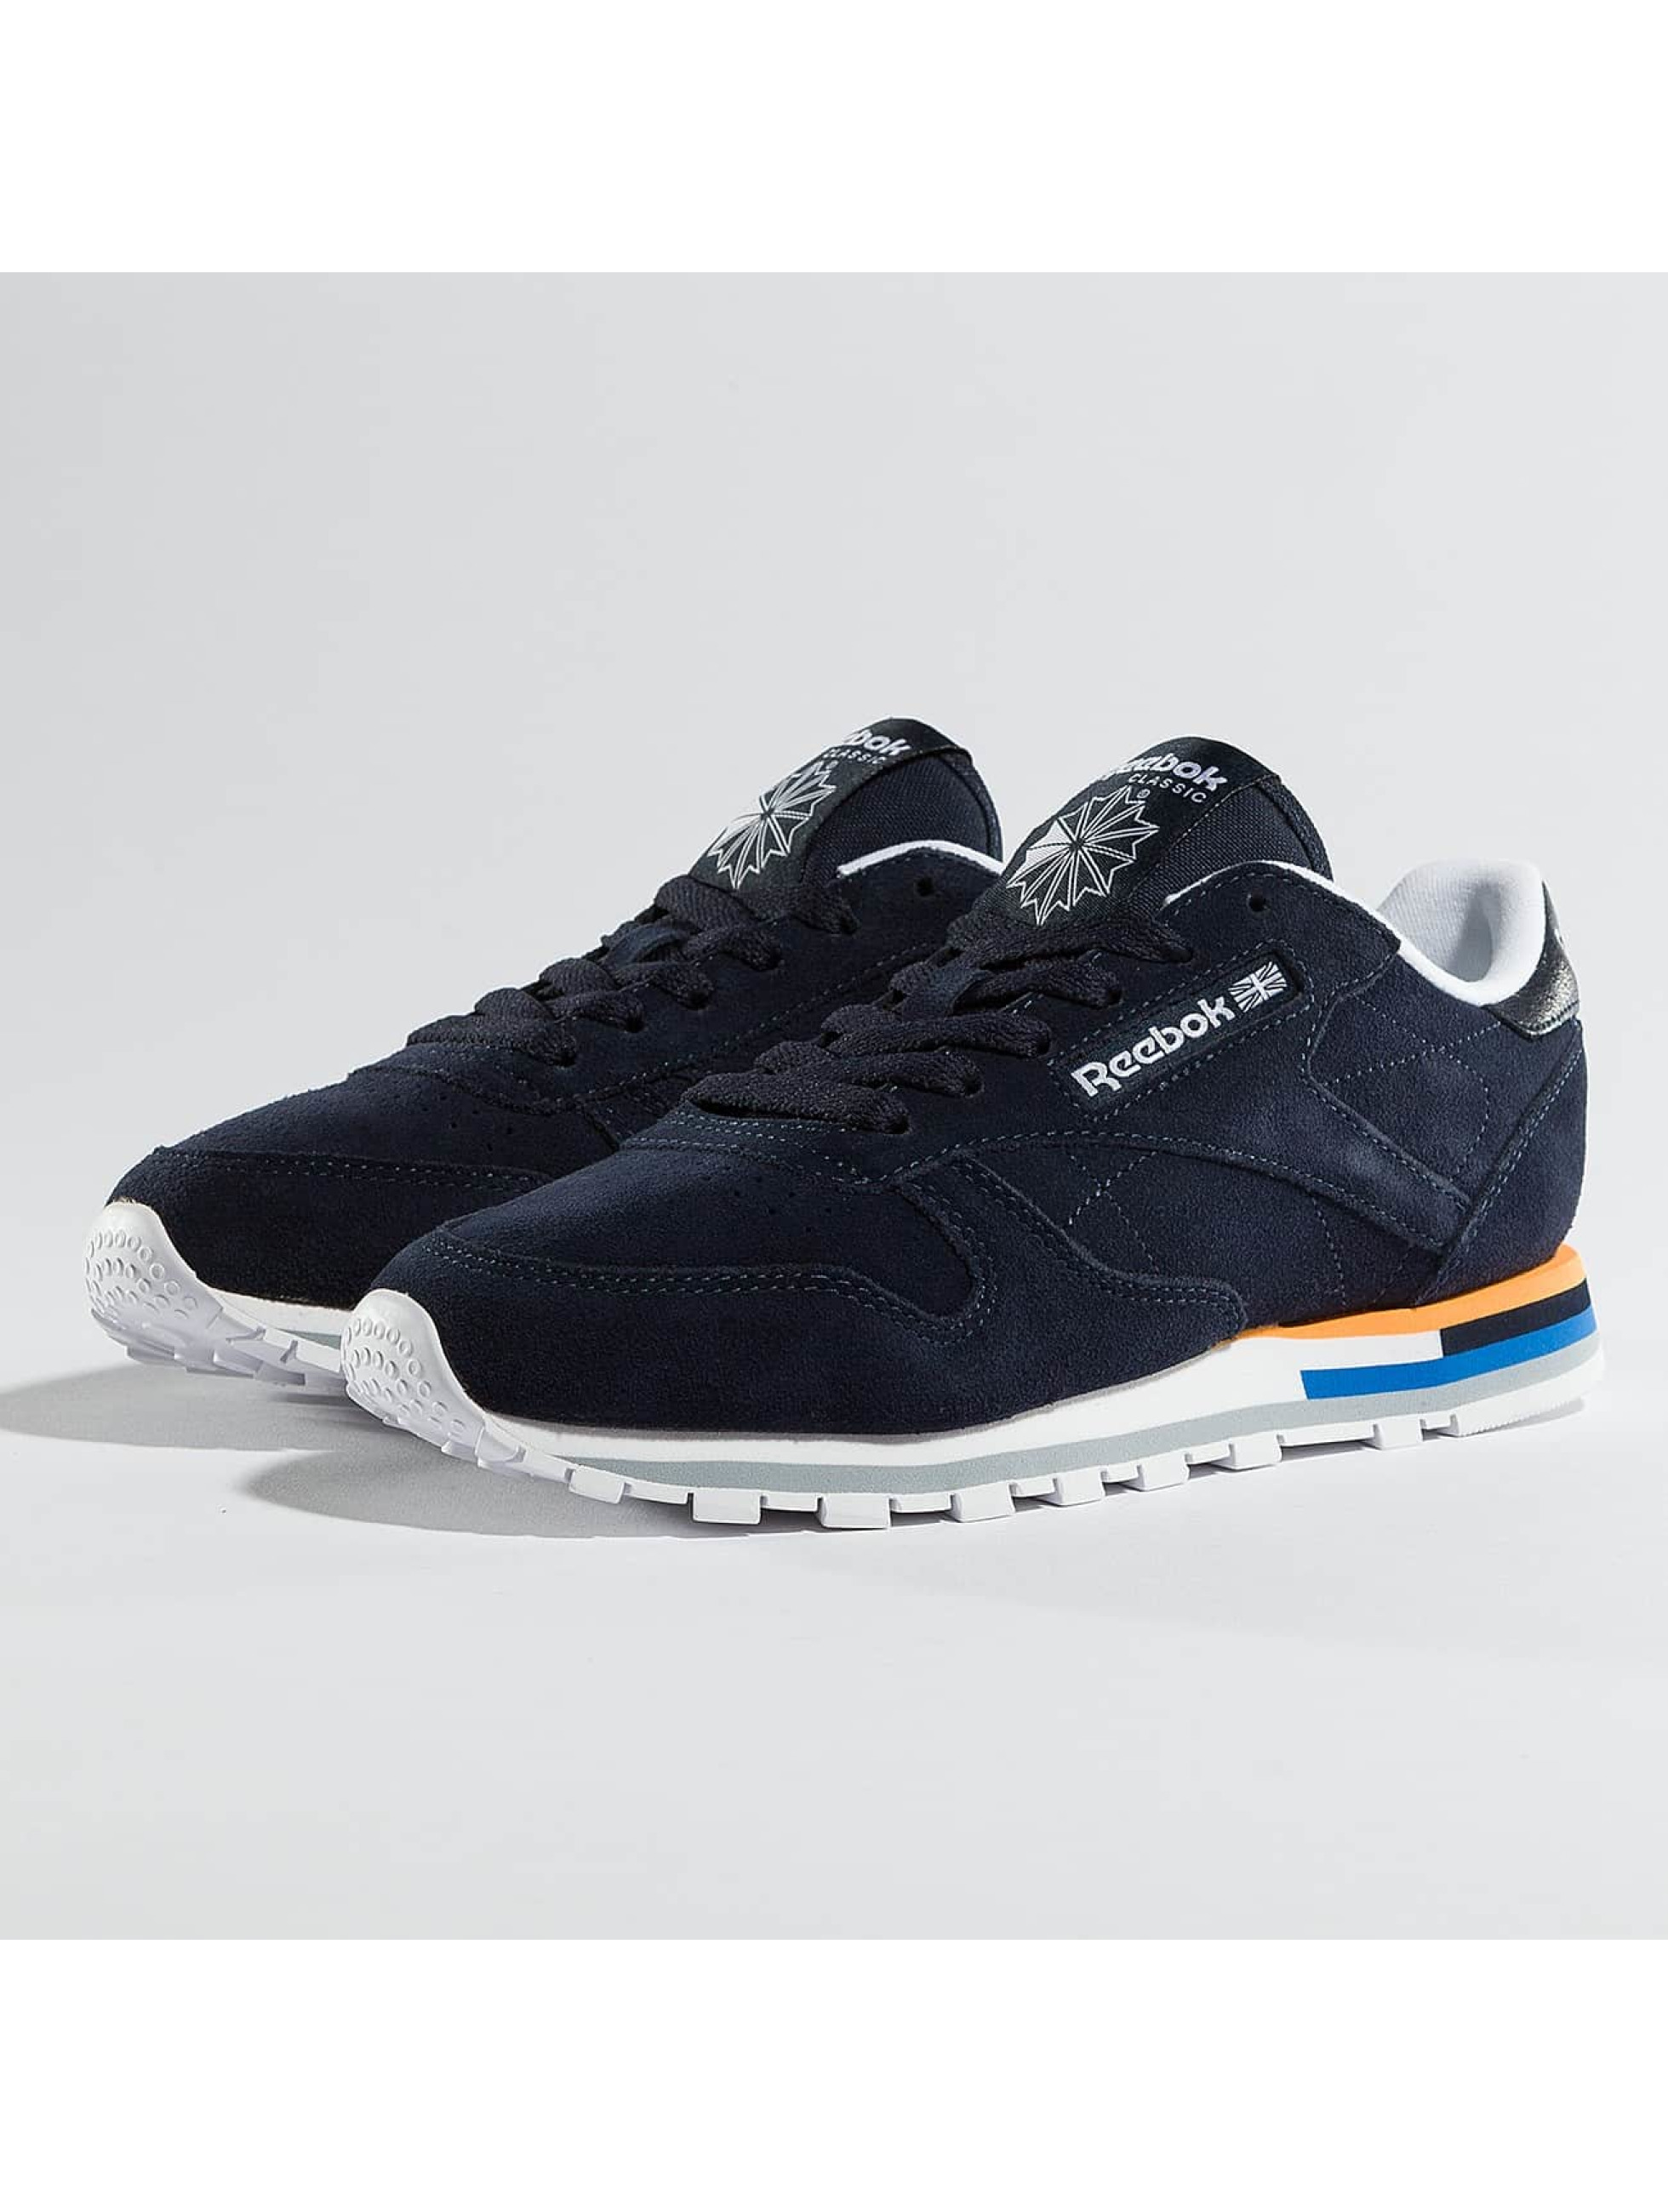 Reebok Sneakers Classic Leather MH indygo